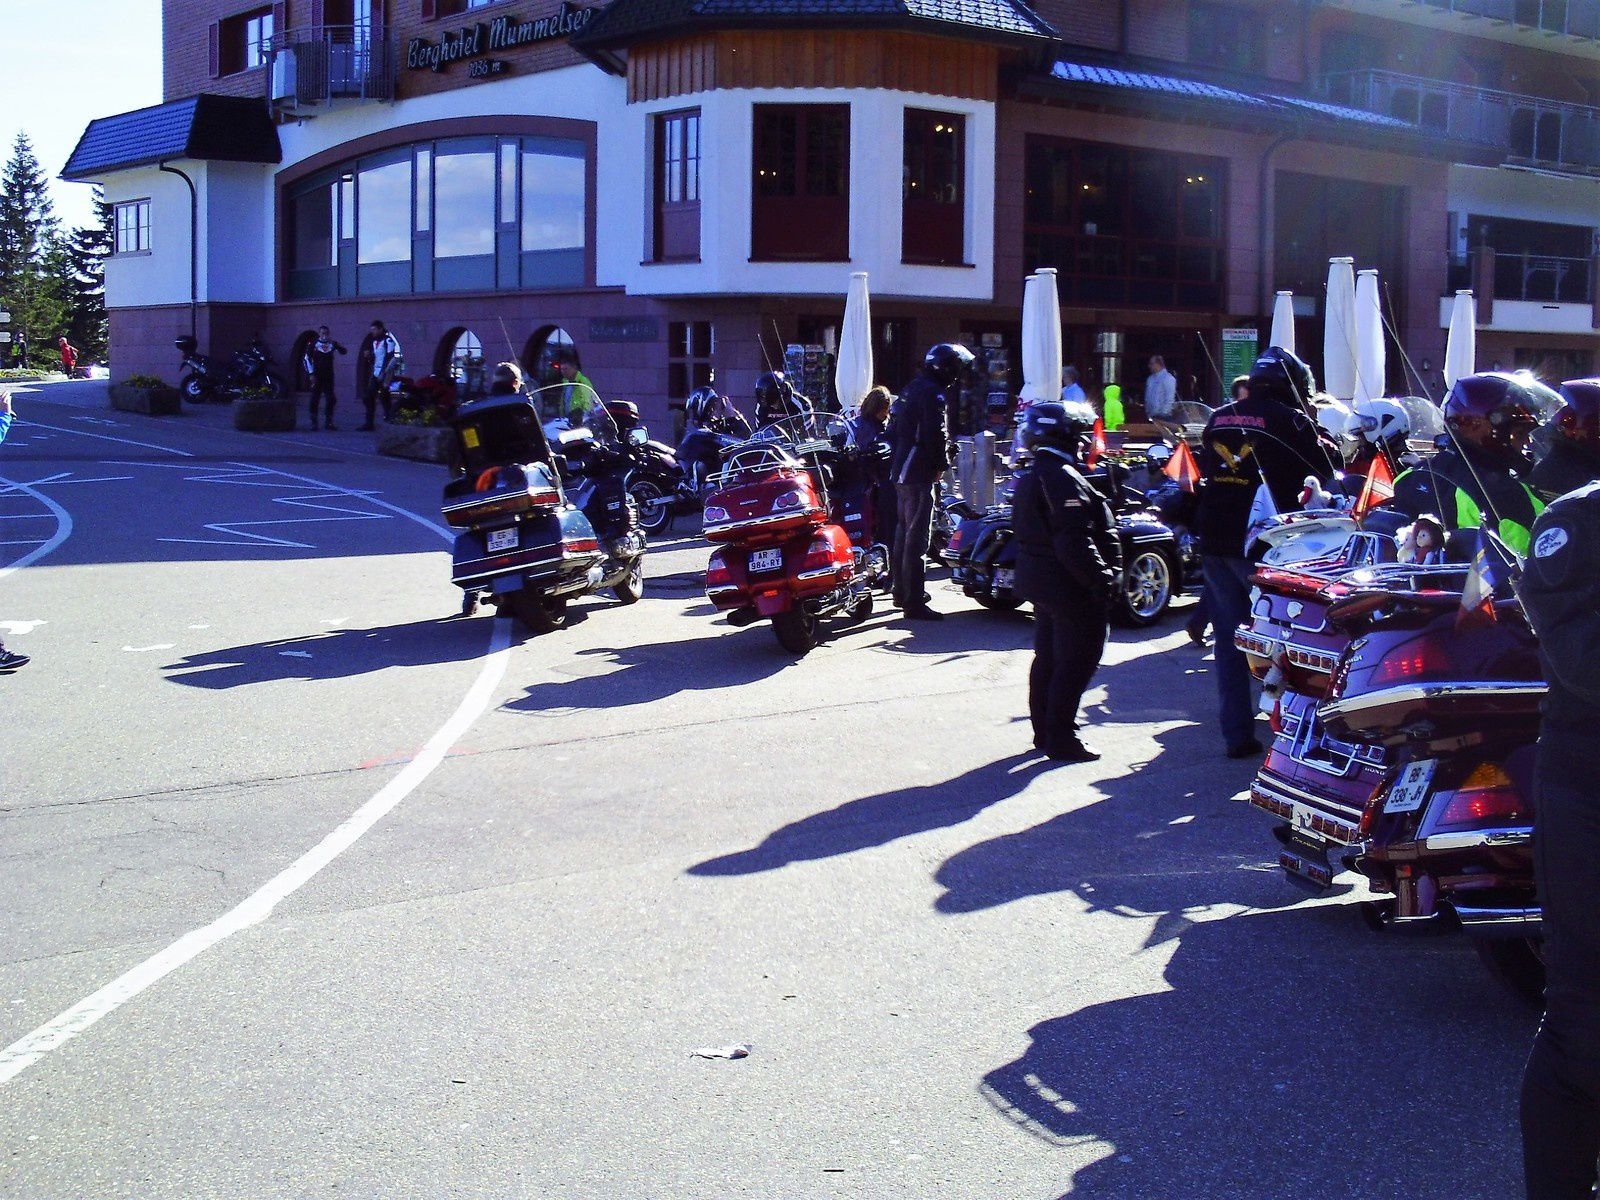 Goldwing Unsersbande - ballade au Mummelsee avec un grand groupe de motards